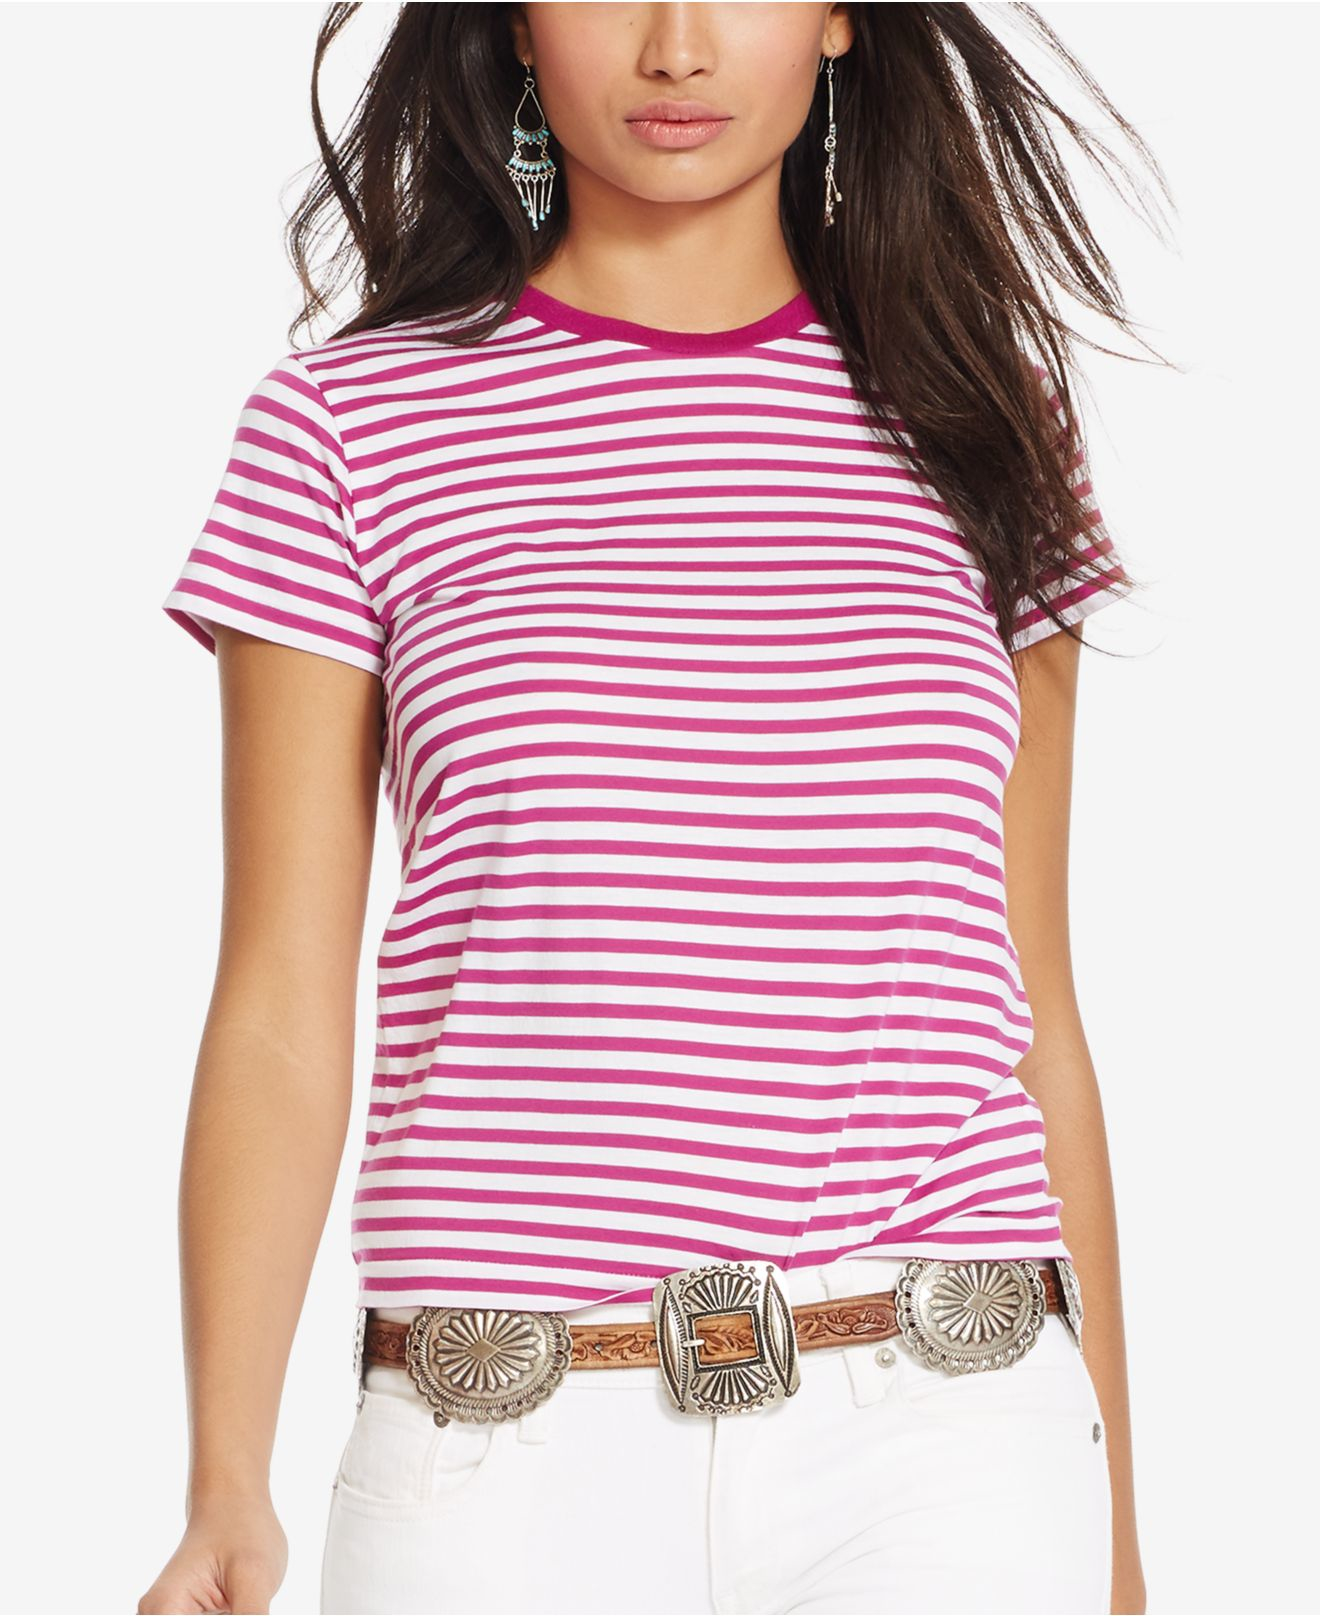 c74ad8e03879d Lyst - Polo Ralph Lauren Striped Crew Neck T-shirt in Red